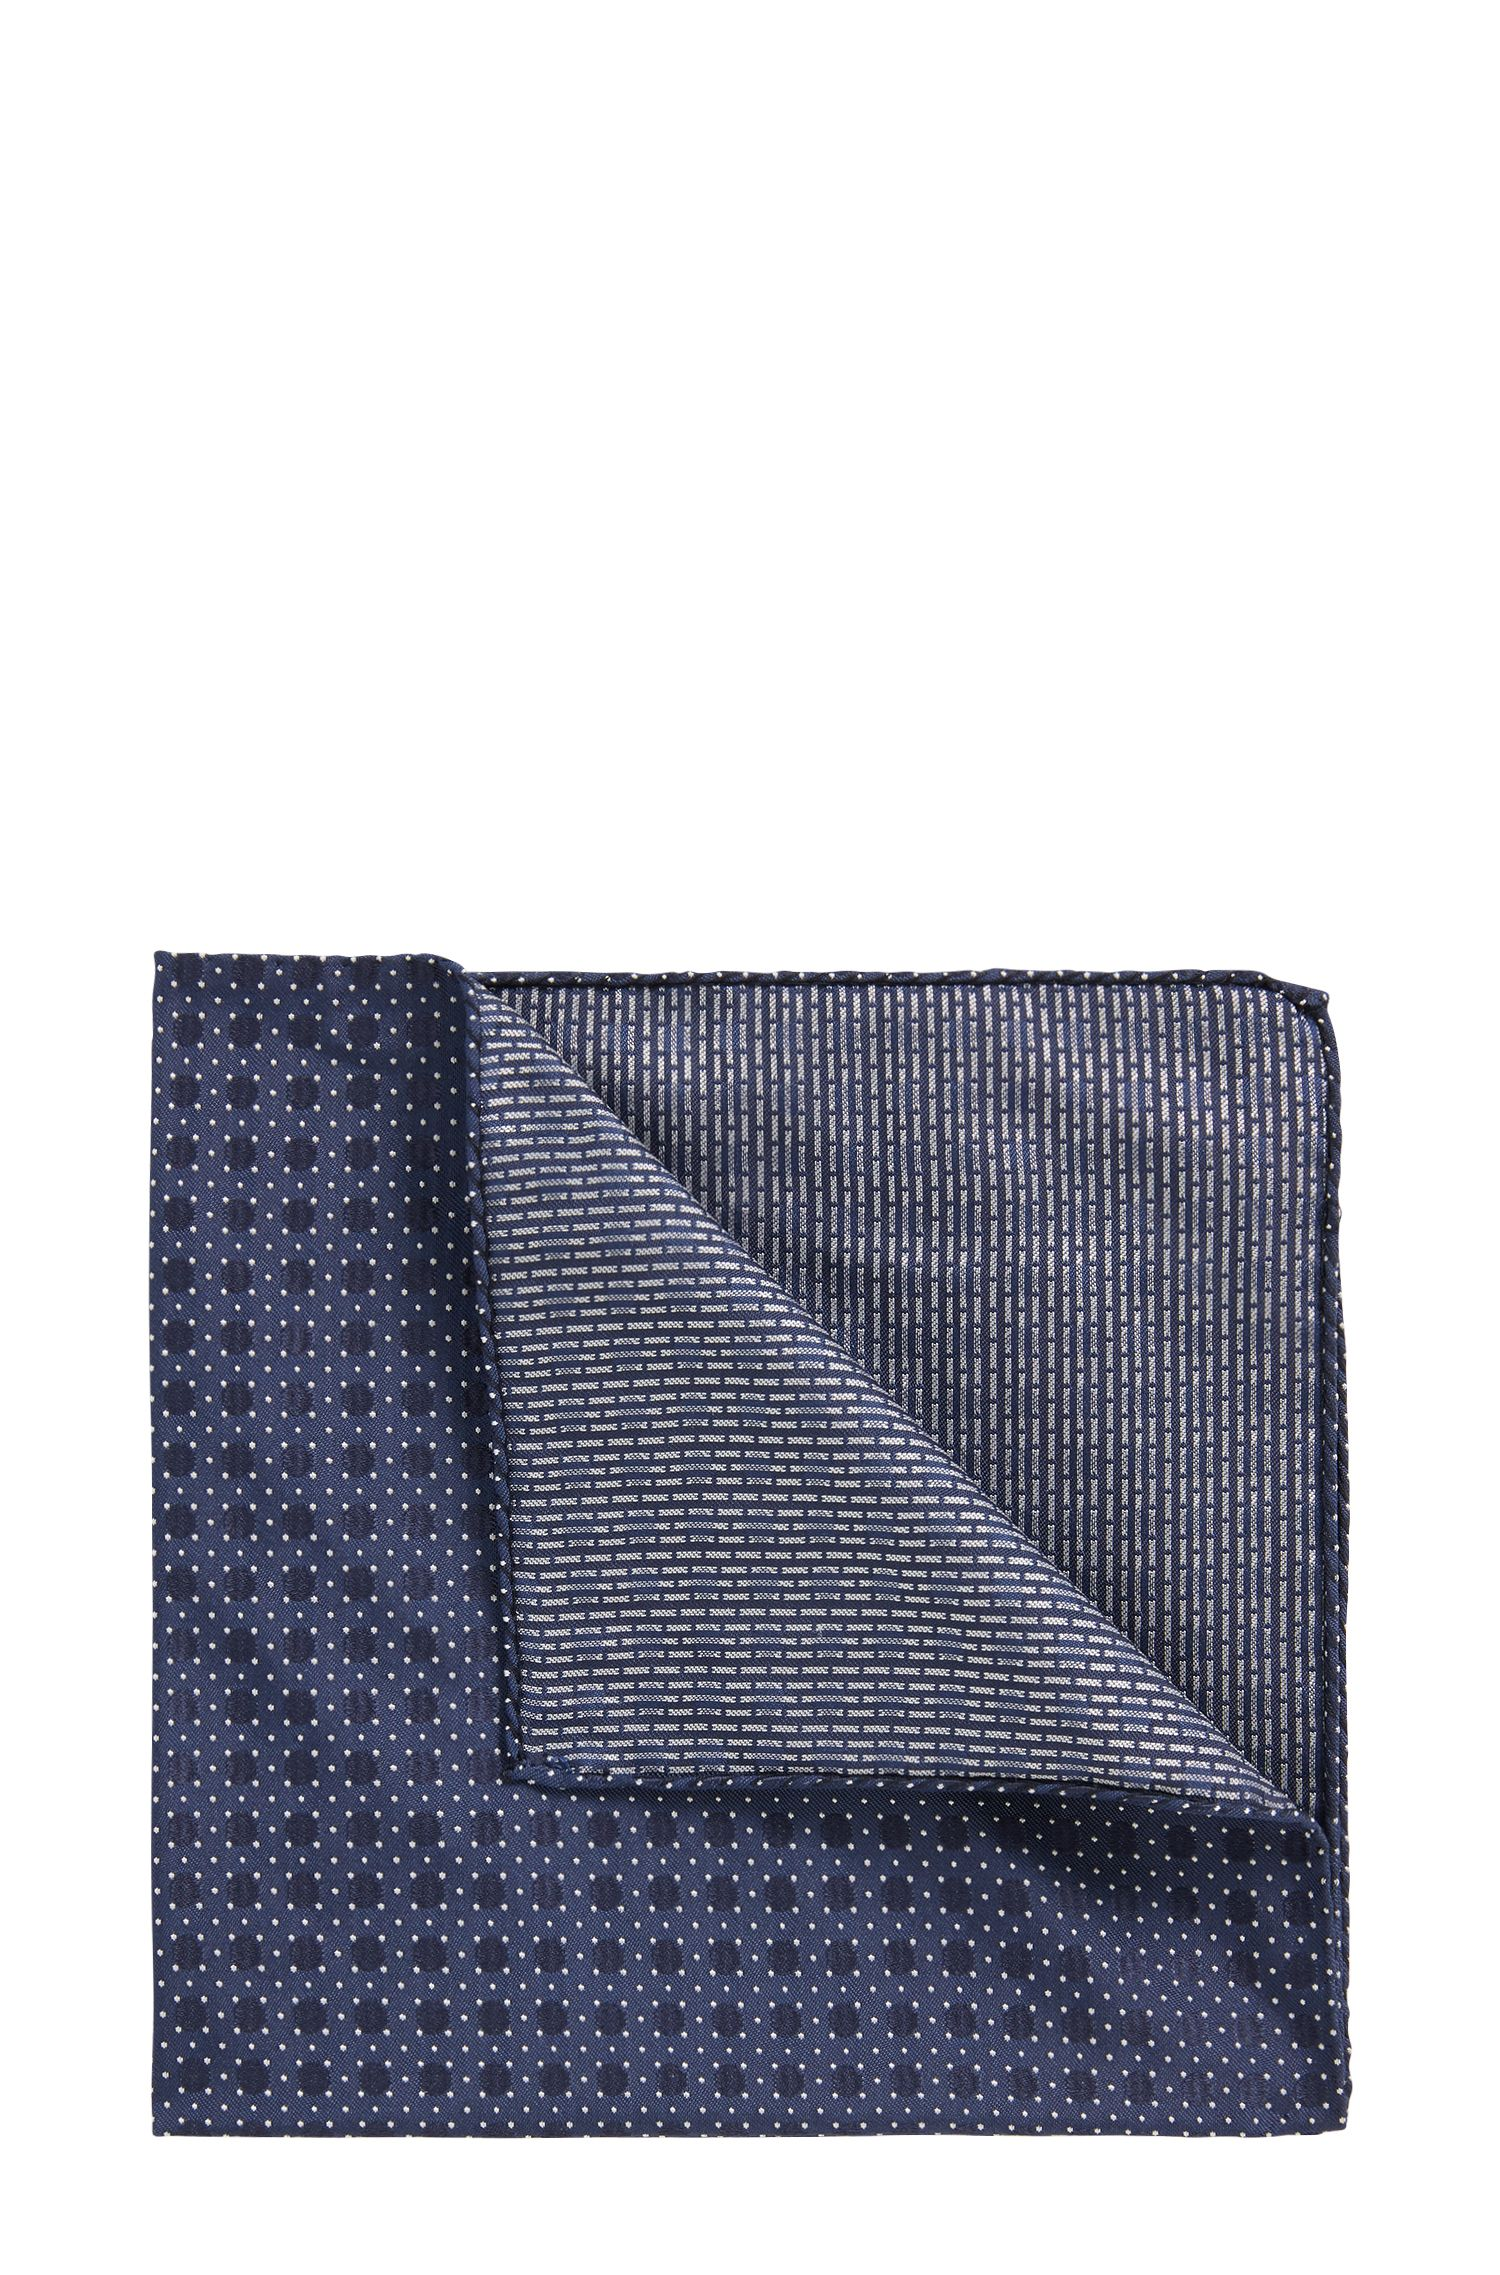 Italian-made patterned pocket square in silk jacquard